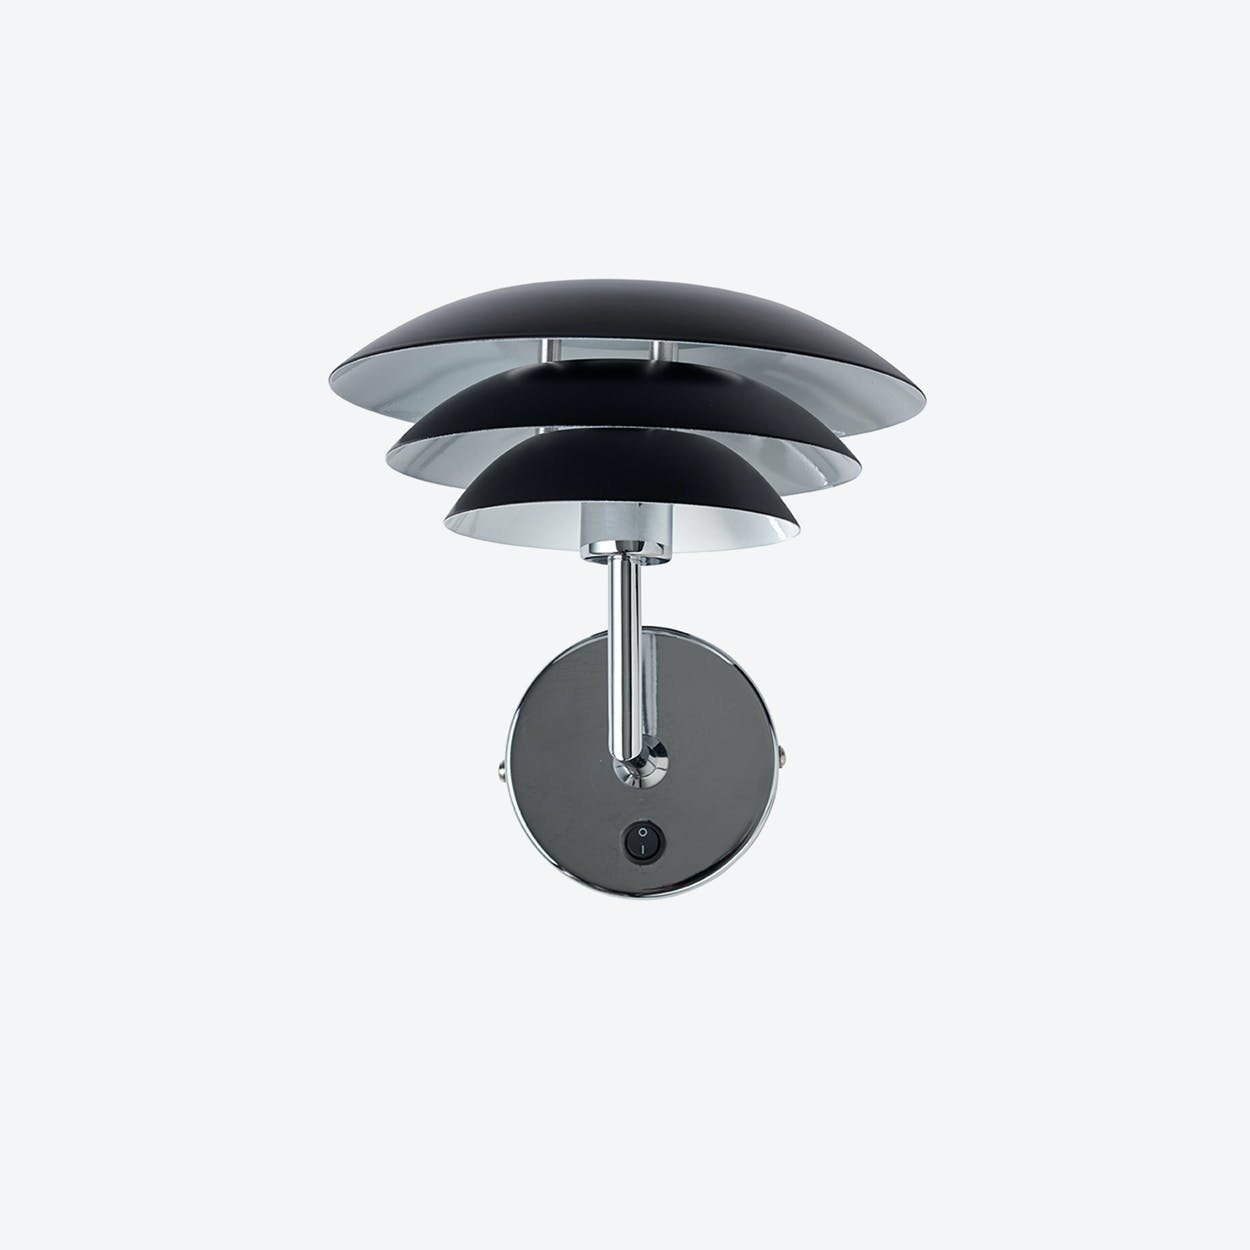 DL20 Nyhed Wall Light in Black